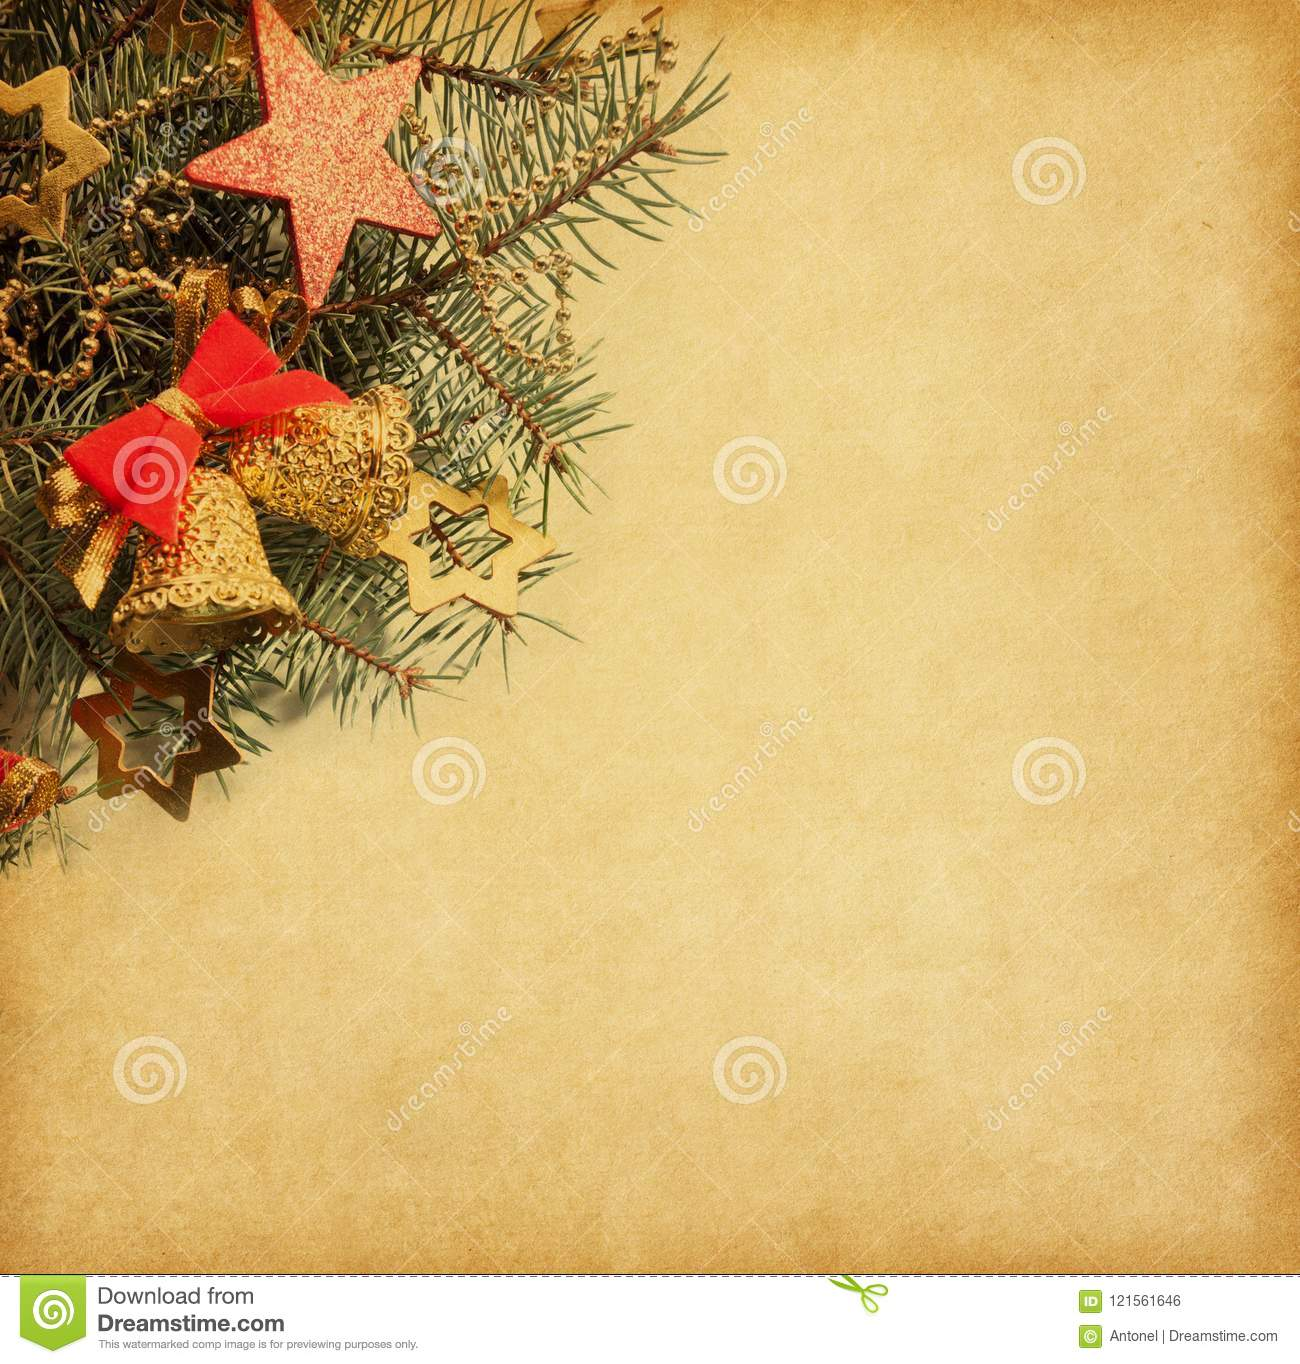 Vintage Paper With Spruce Branch Adorned With Christmas Decorations